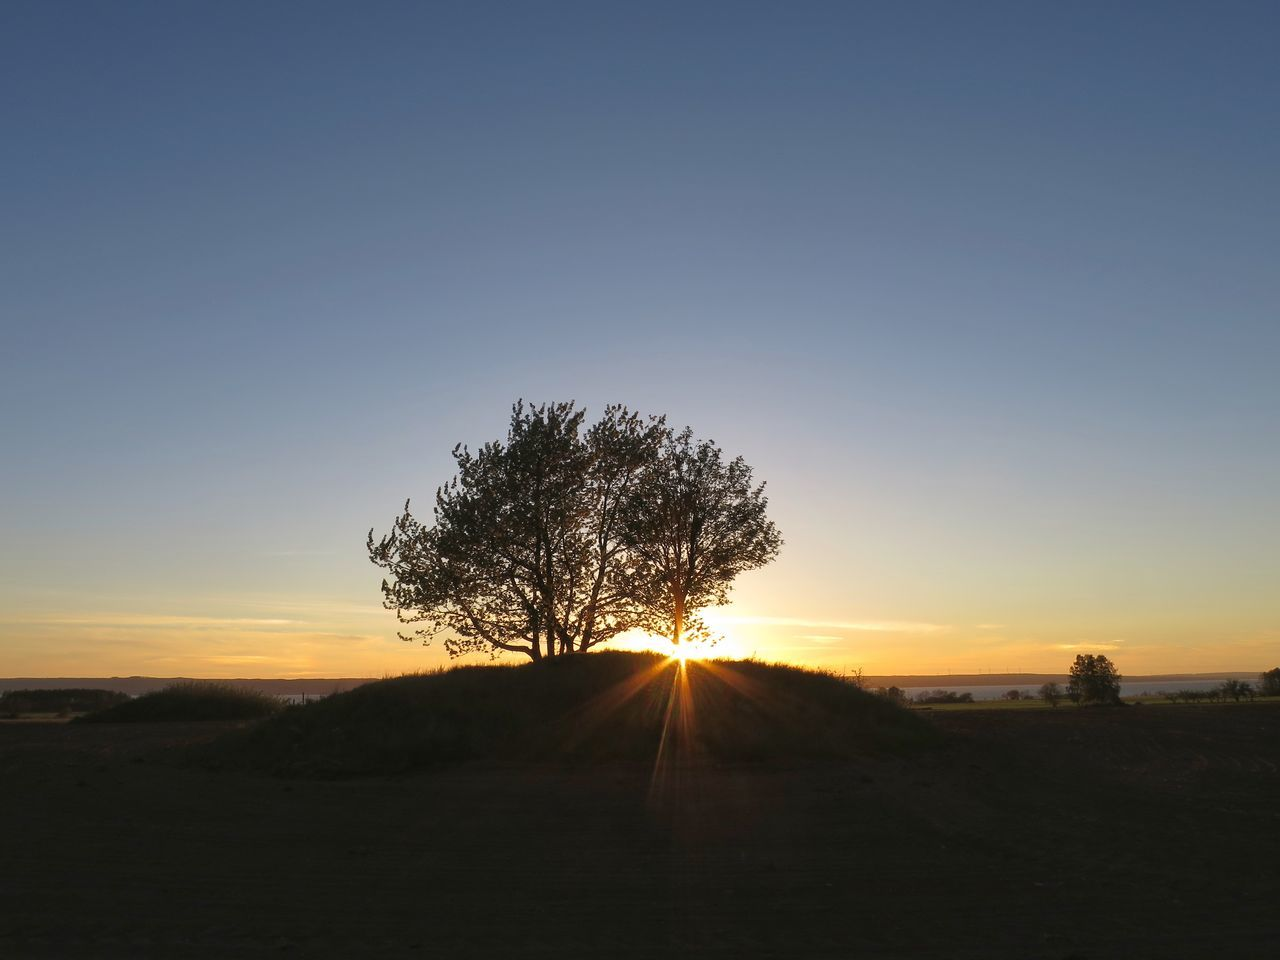 Beauty In Nature Sunset Nature Sunlight Tree Silhouette Landscape Outdoors Scenics